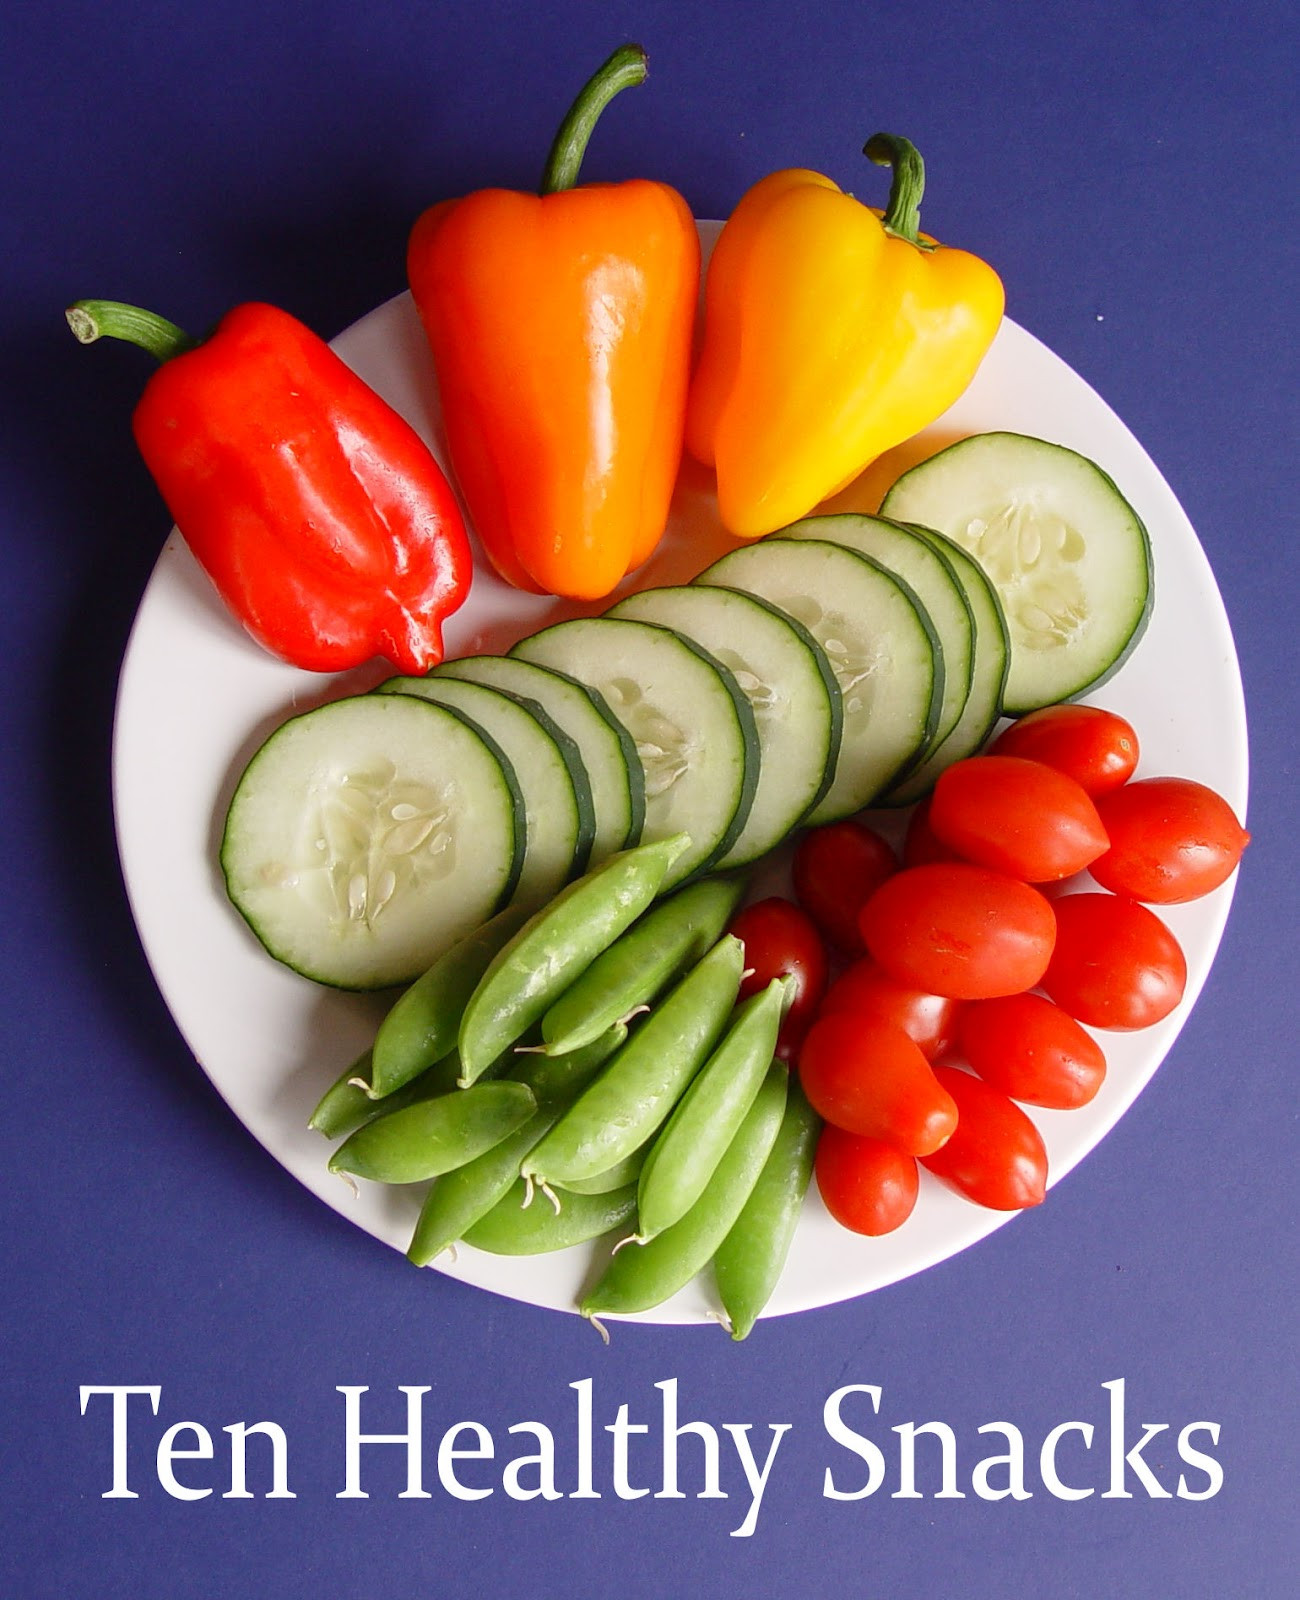 Healthy Foods And Snacks  Ten Healthy Snacks with Printable Page